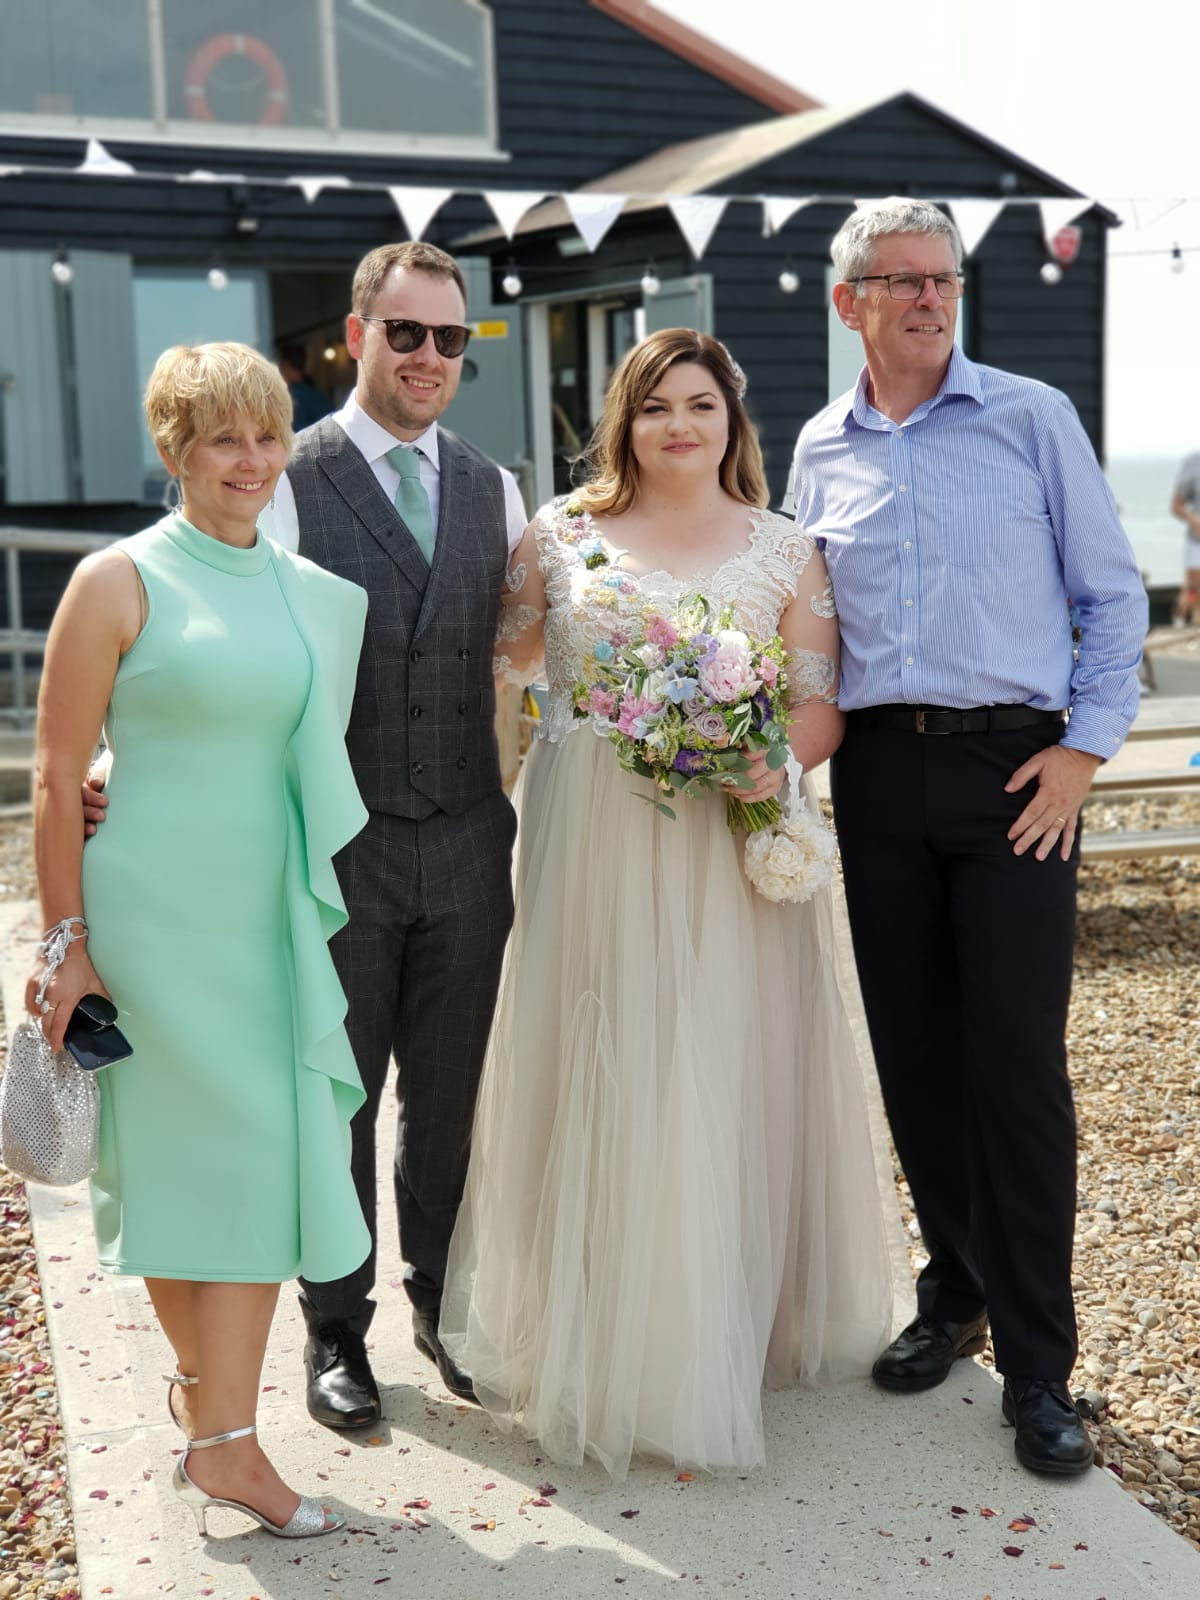 The bridal party:  Is This Mutton blogger Gail Hanlon at the 2018 wedding of her stepdaughter